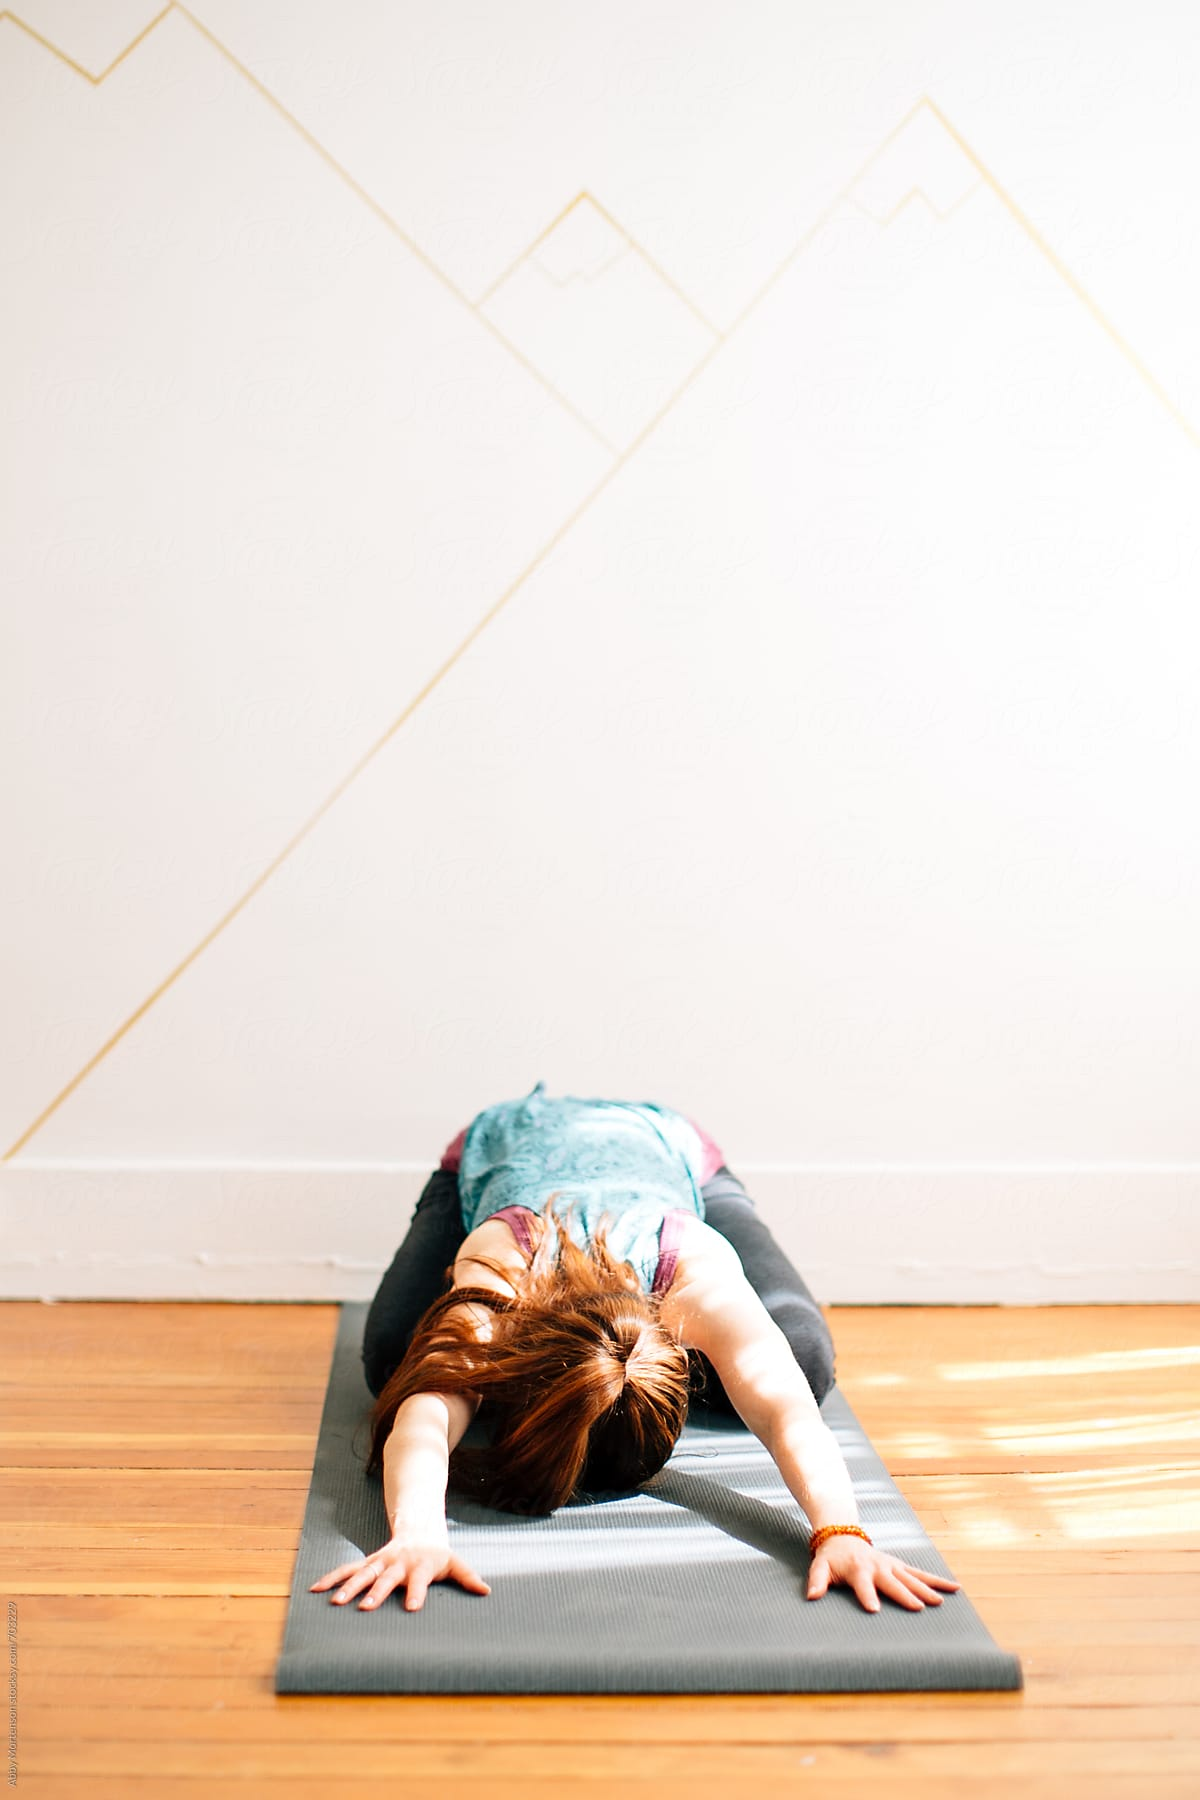 Woman On Yoga Mat In Child S Pose By Abby Mortenson Stocksy United